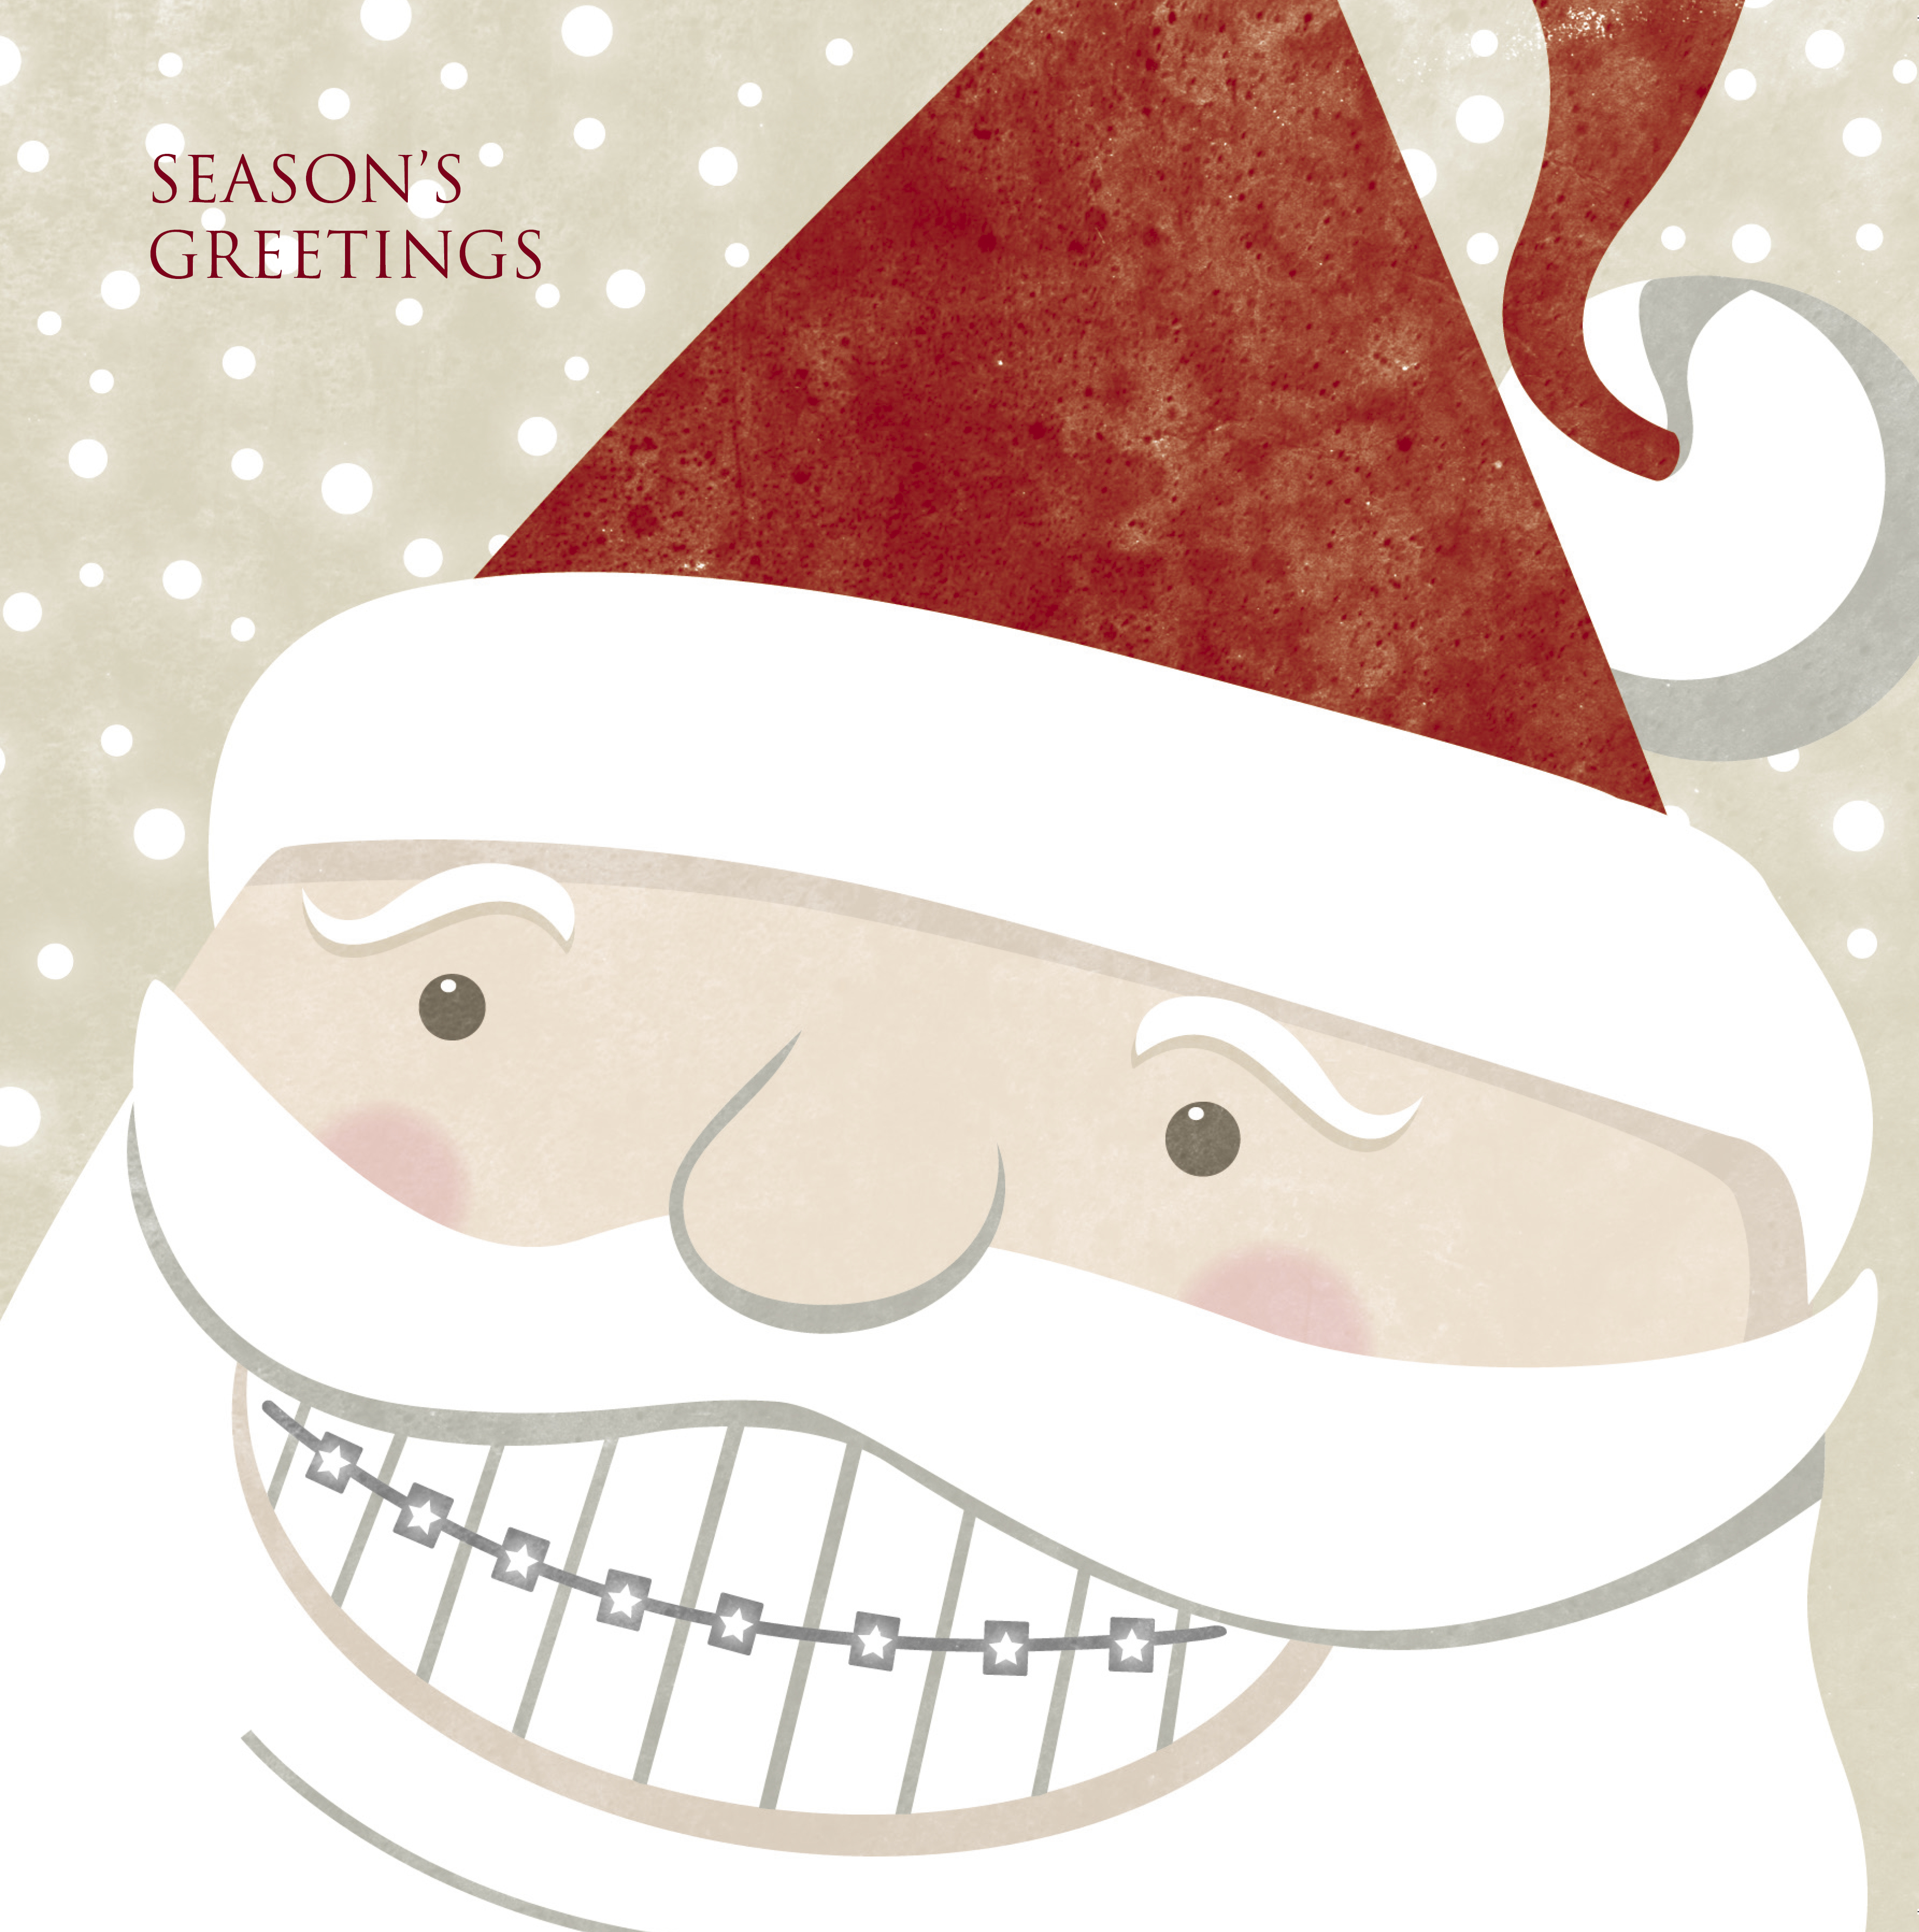 ORTHO Santa Card